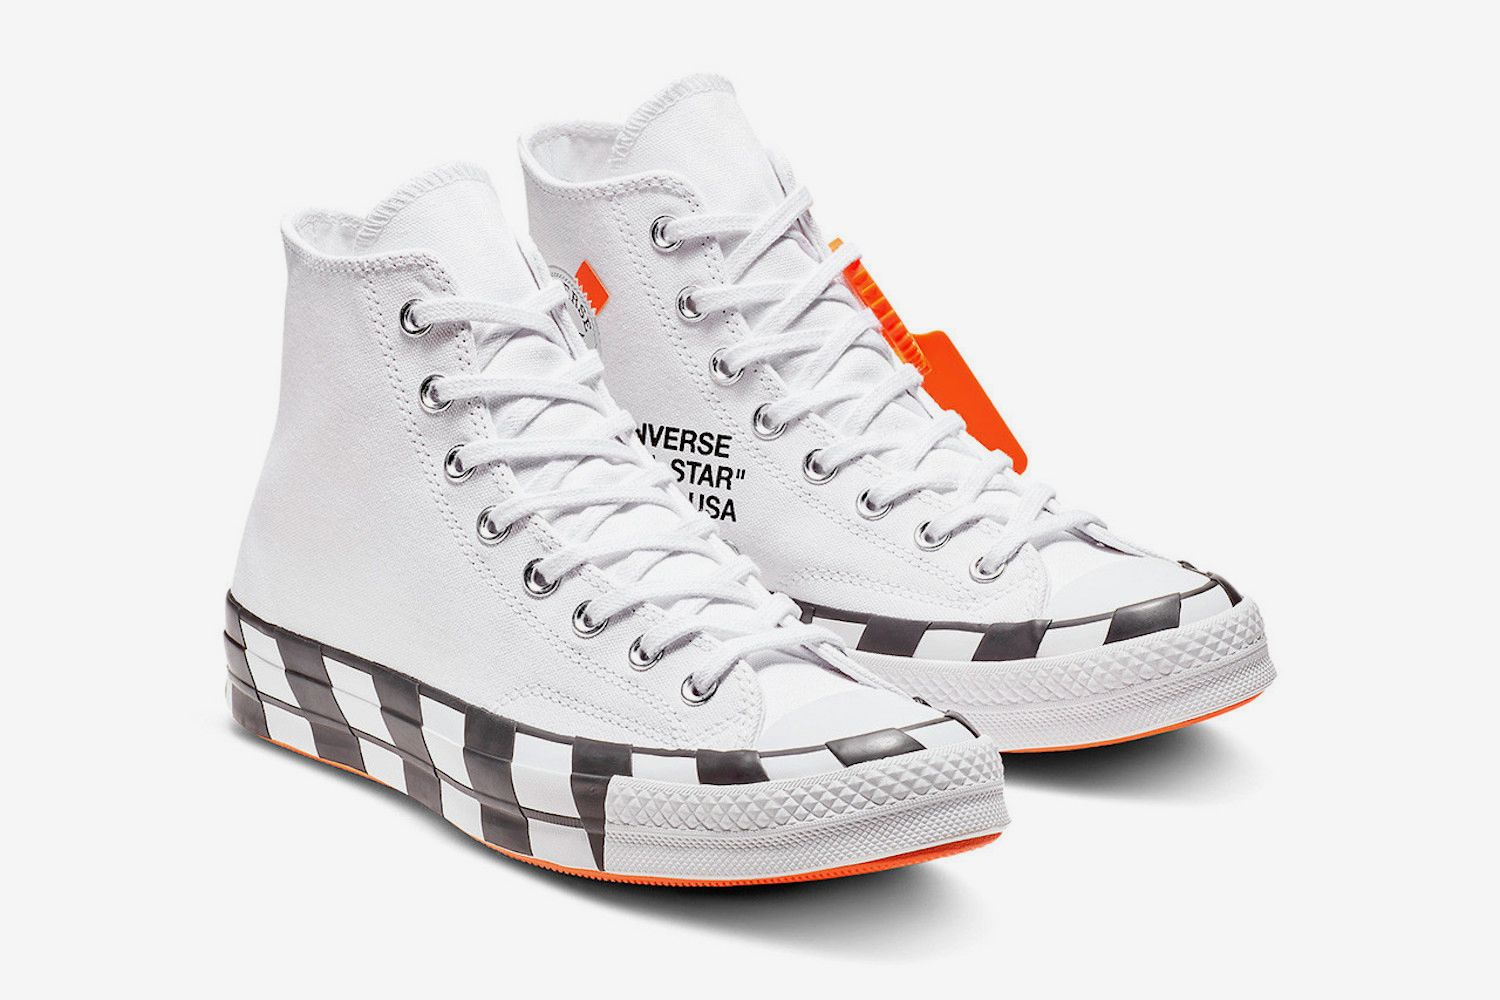 converse off white uomo